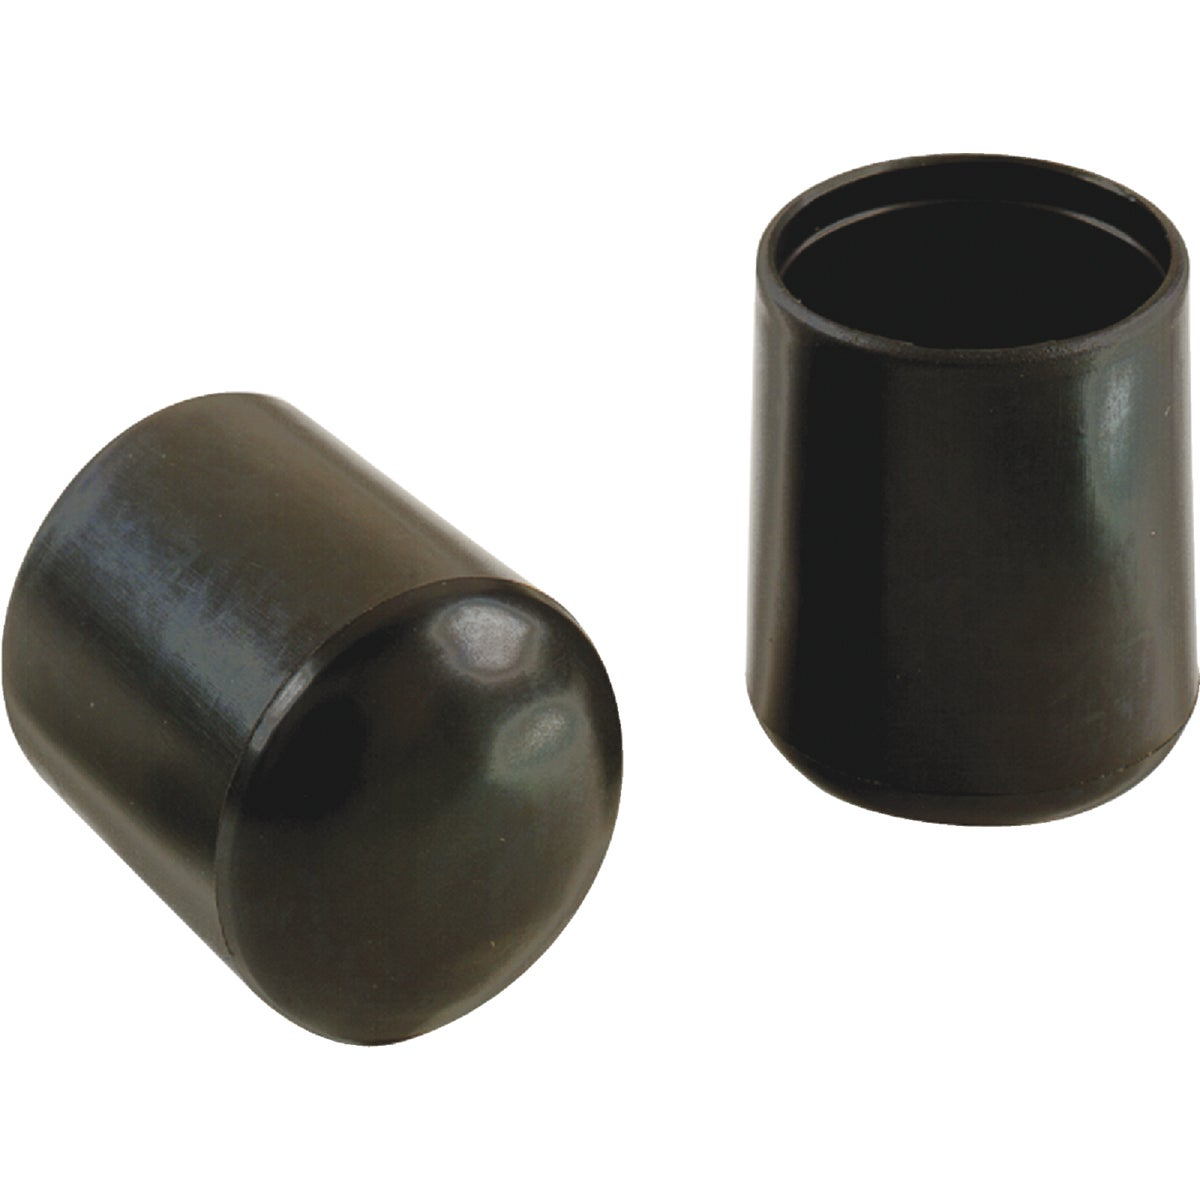 "3/4"" BLACK VINYL LEG TIP - 209457 by Shepherd Hardware"